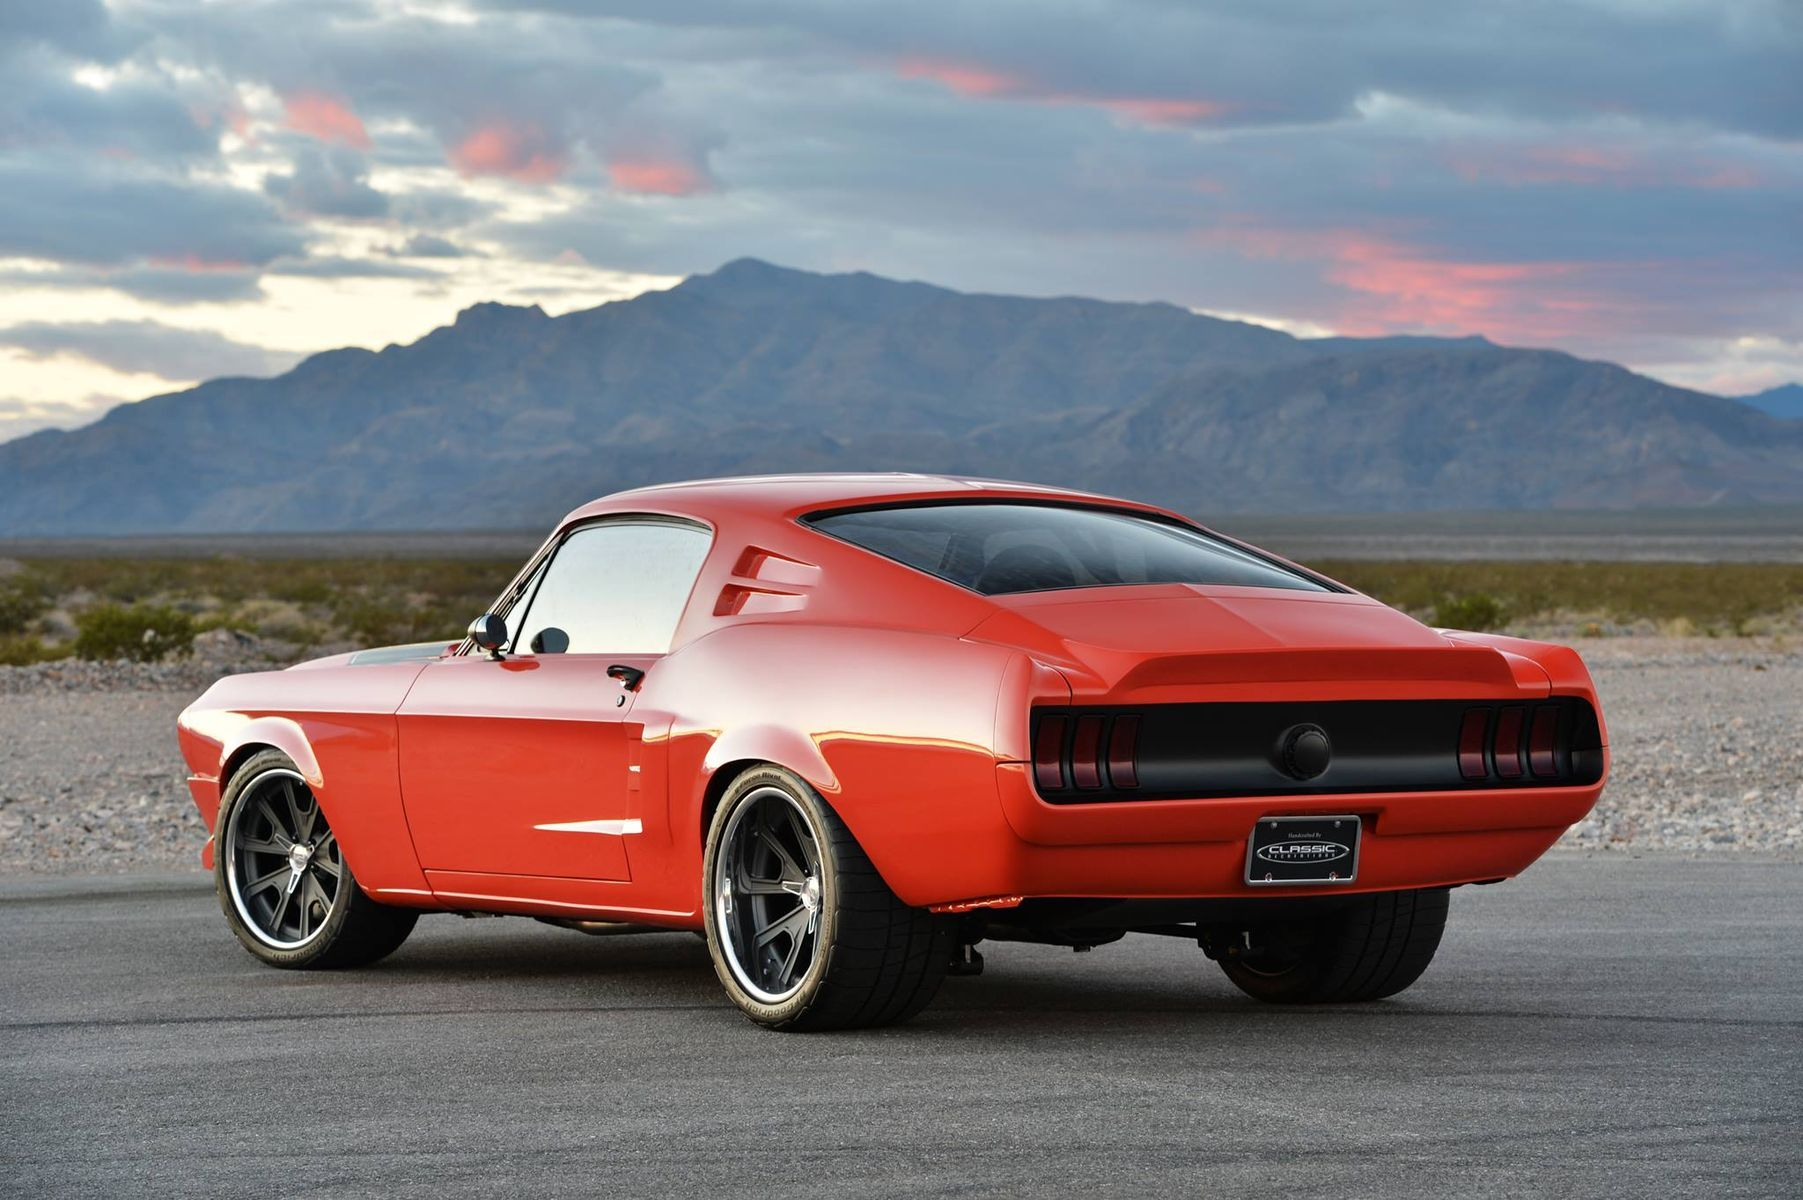 1968 Ford Mustang | Villain Mustang on Grip Equipped Grudge Wheels